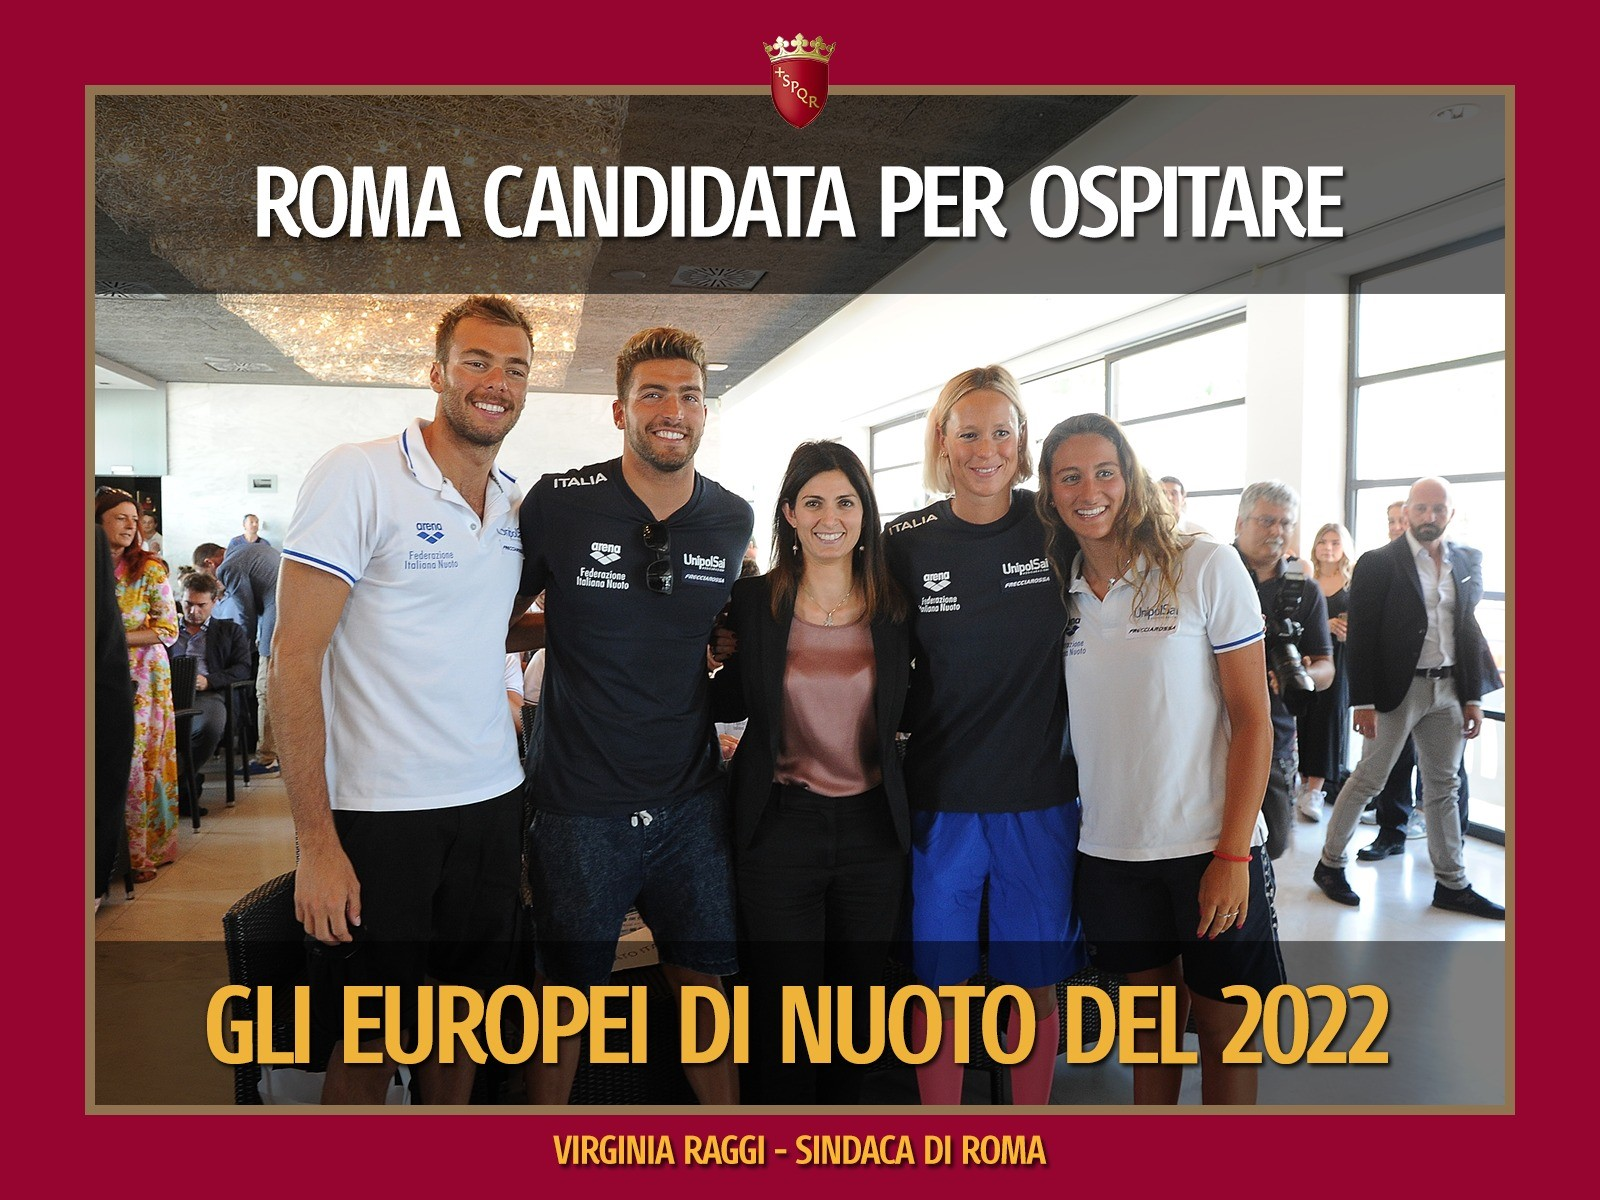 Roma in corsa per l'Europeo 2022